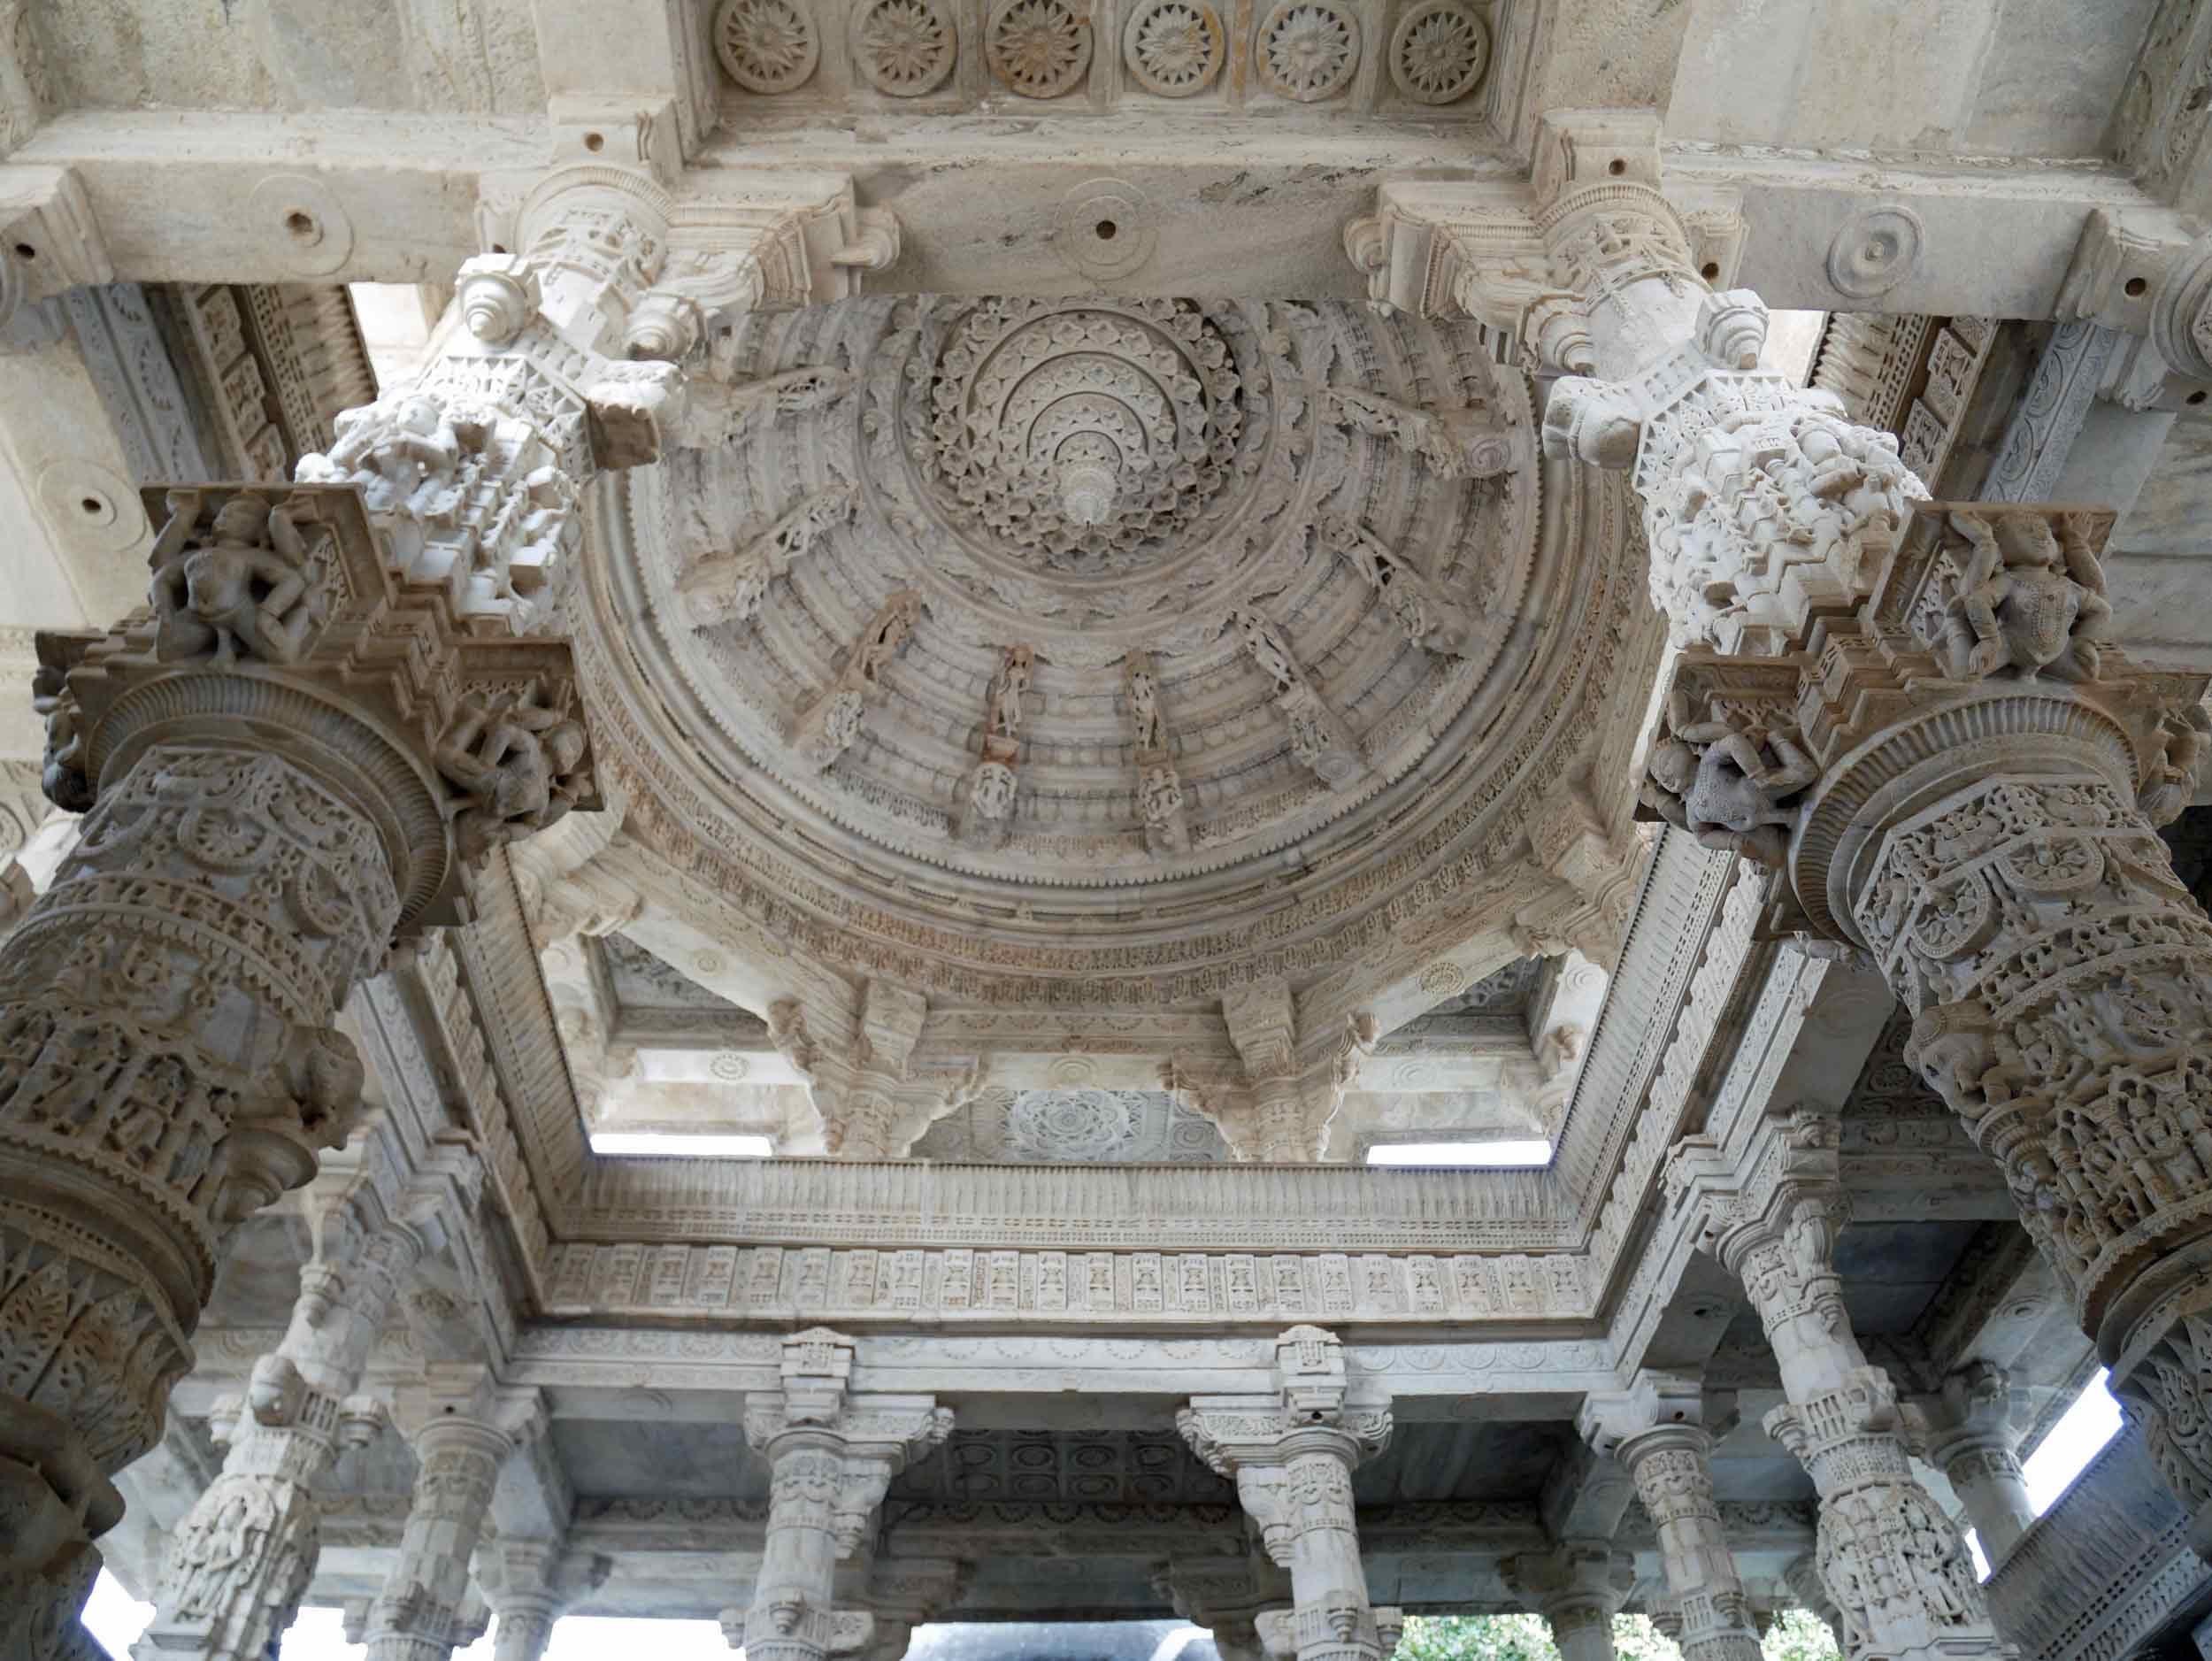 Supporting the domes of the temple are more than 1,444 marble pillars - all uniquely carved with no two pillars the same.